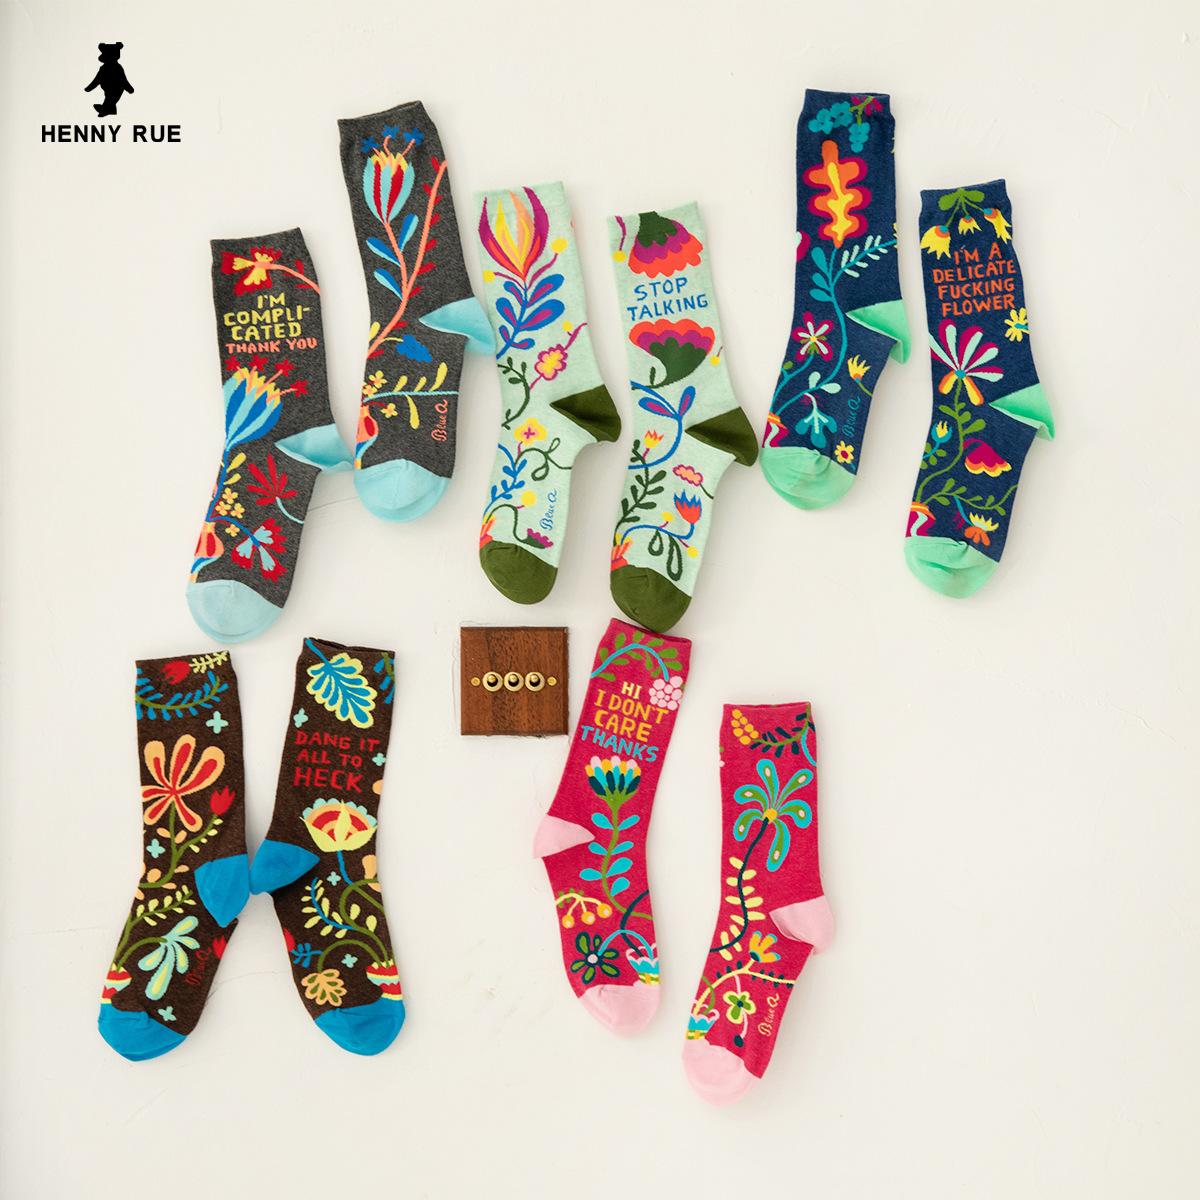 New Women Socks 2019 New Fashion Socks Autumn Personality Creative Tide Novelty Preppy Style Cute Happy Socks Women 1 Pair